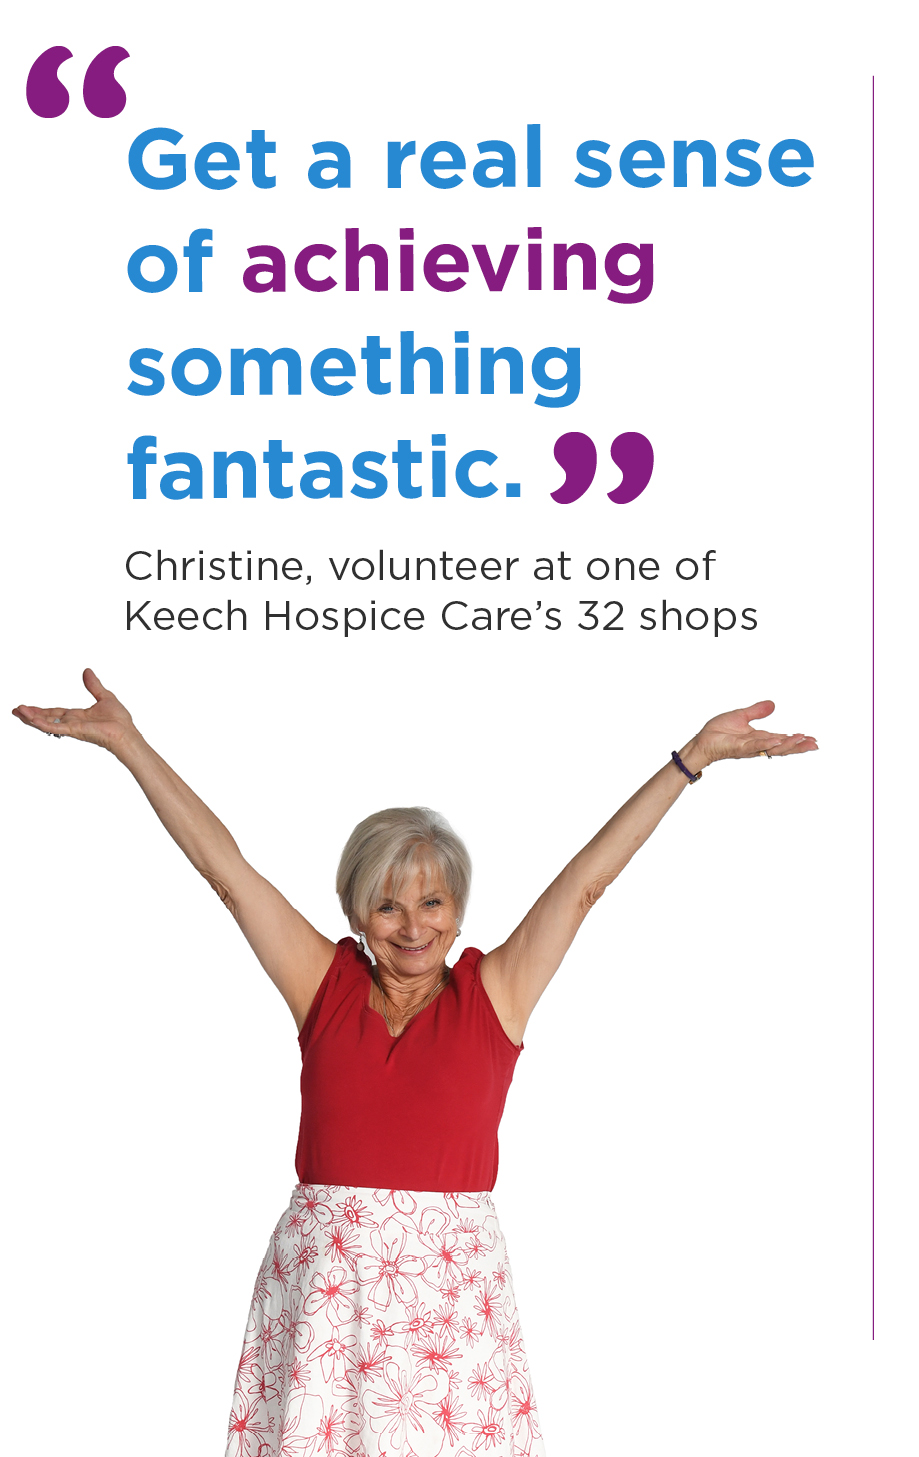 Quote and image volunteering 3